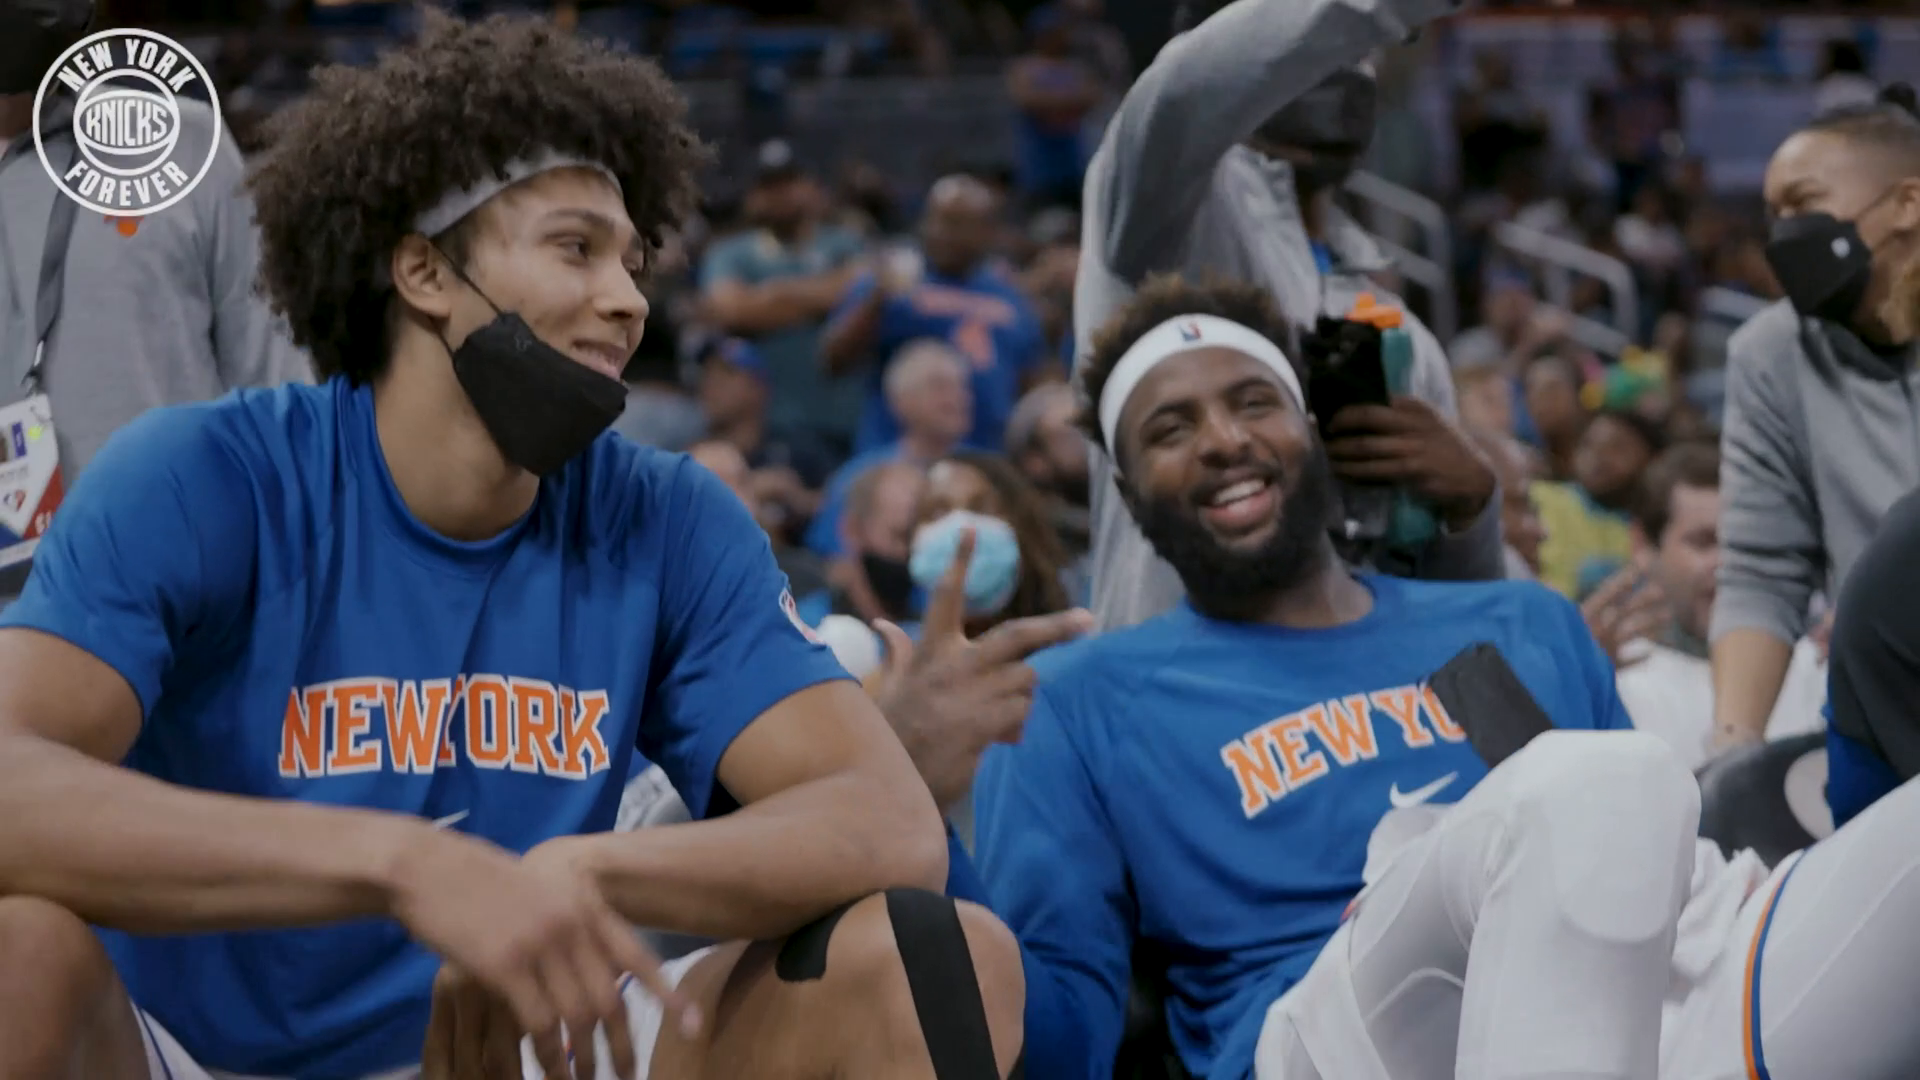 Sights & Sounds from the Knicks Win Over the Magic